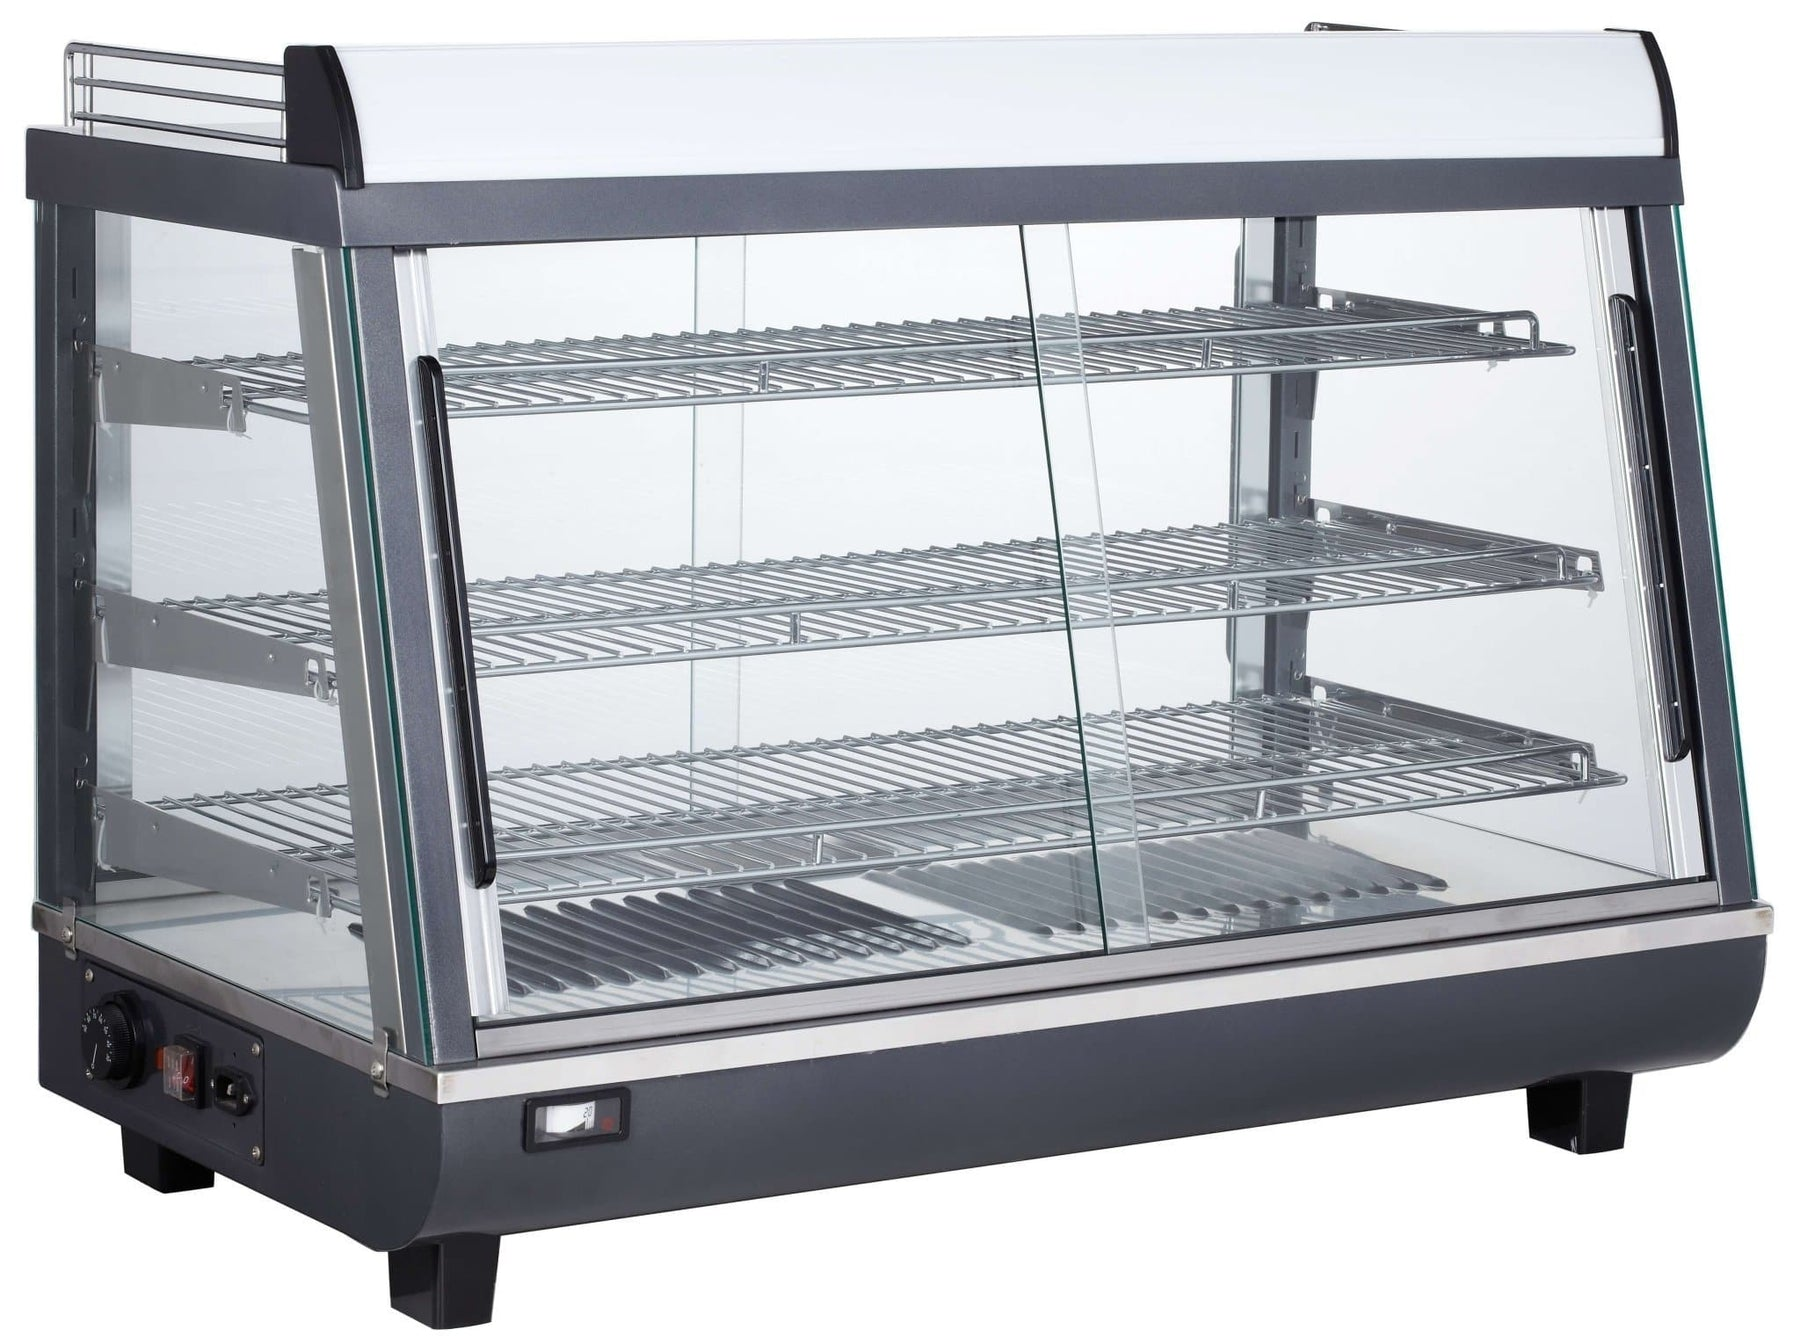 "Canco RTR-136L Deluxe Glass Display 36"" Food Warmer - Omni Food Equipment"